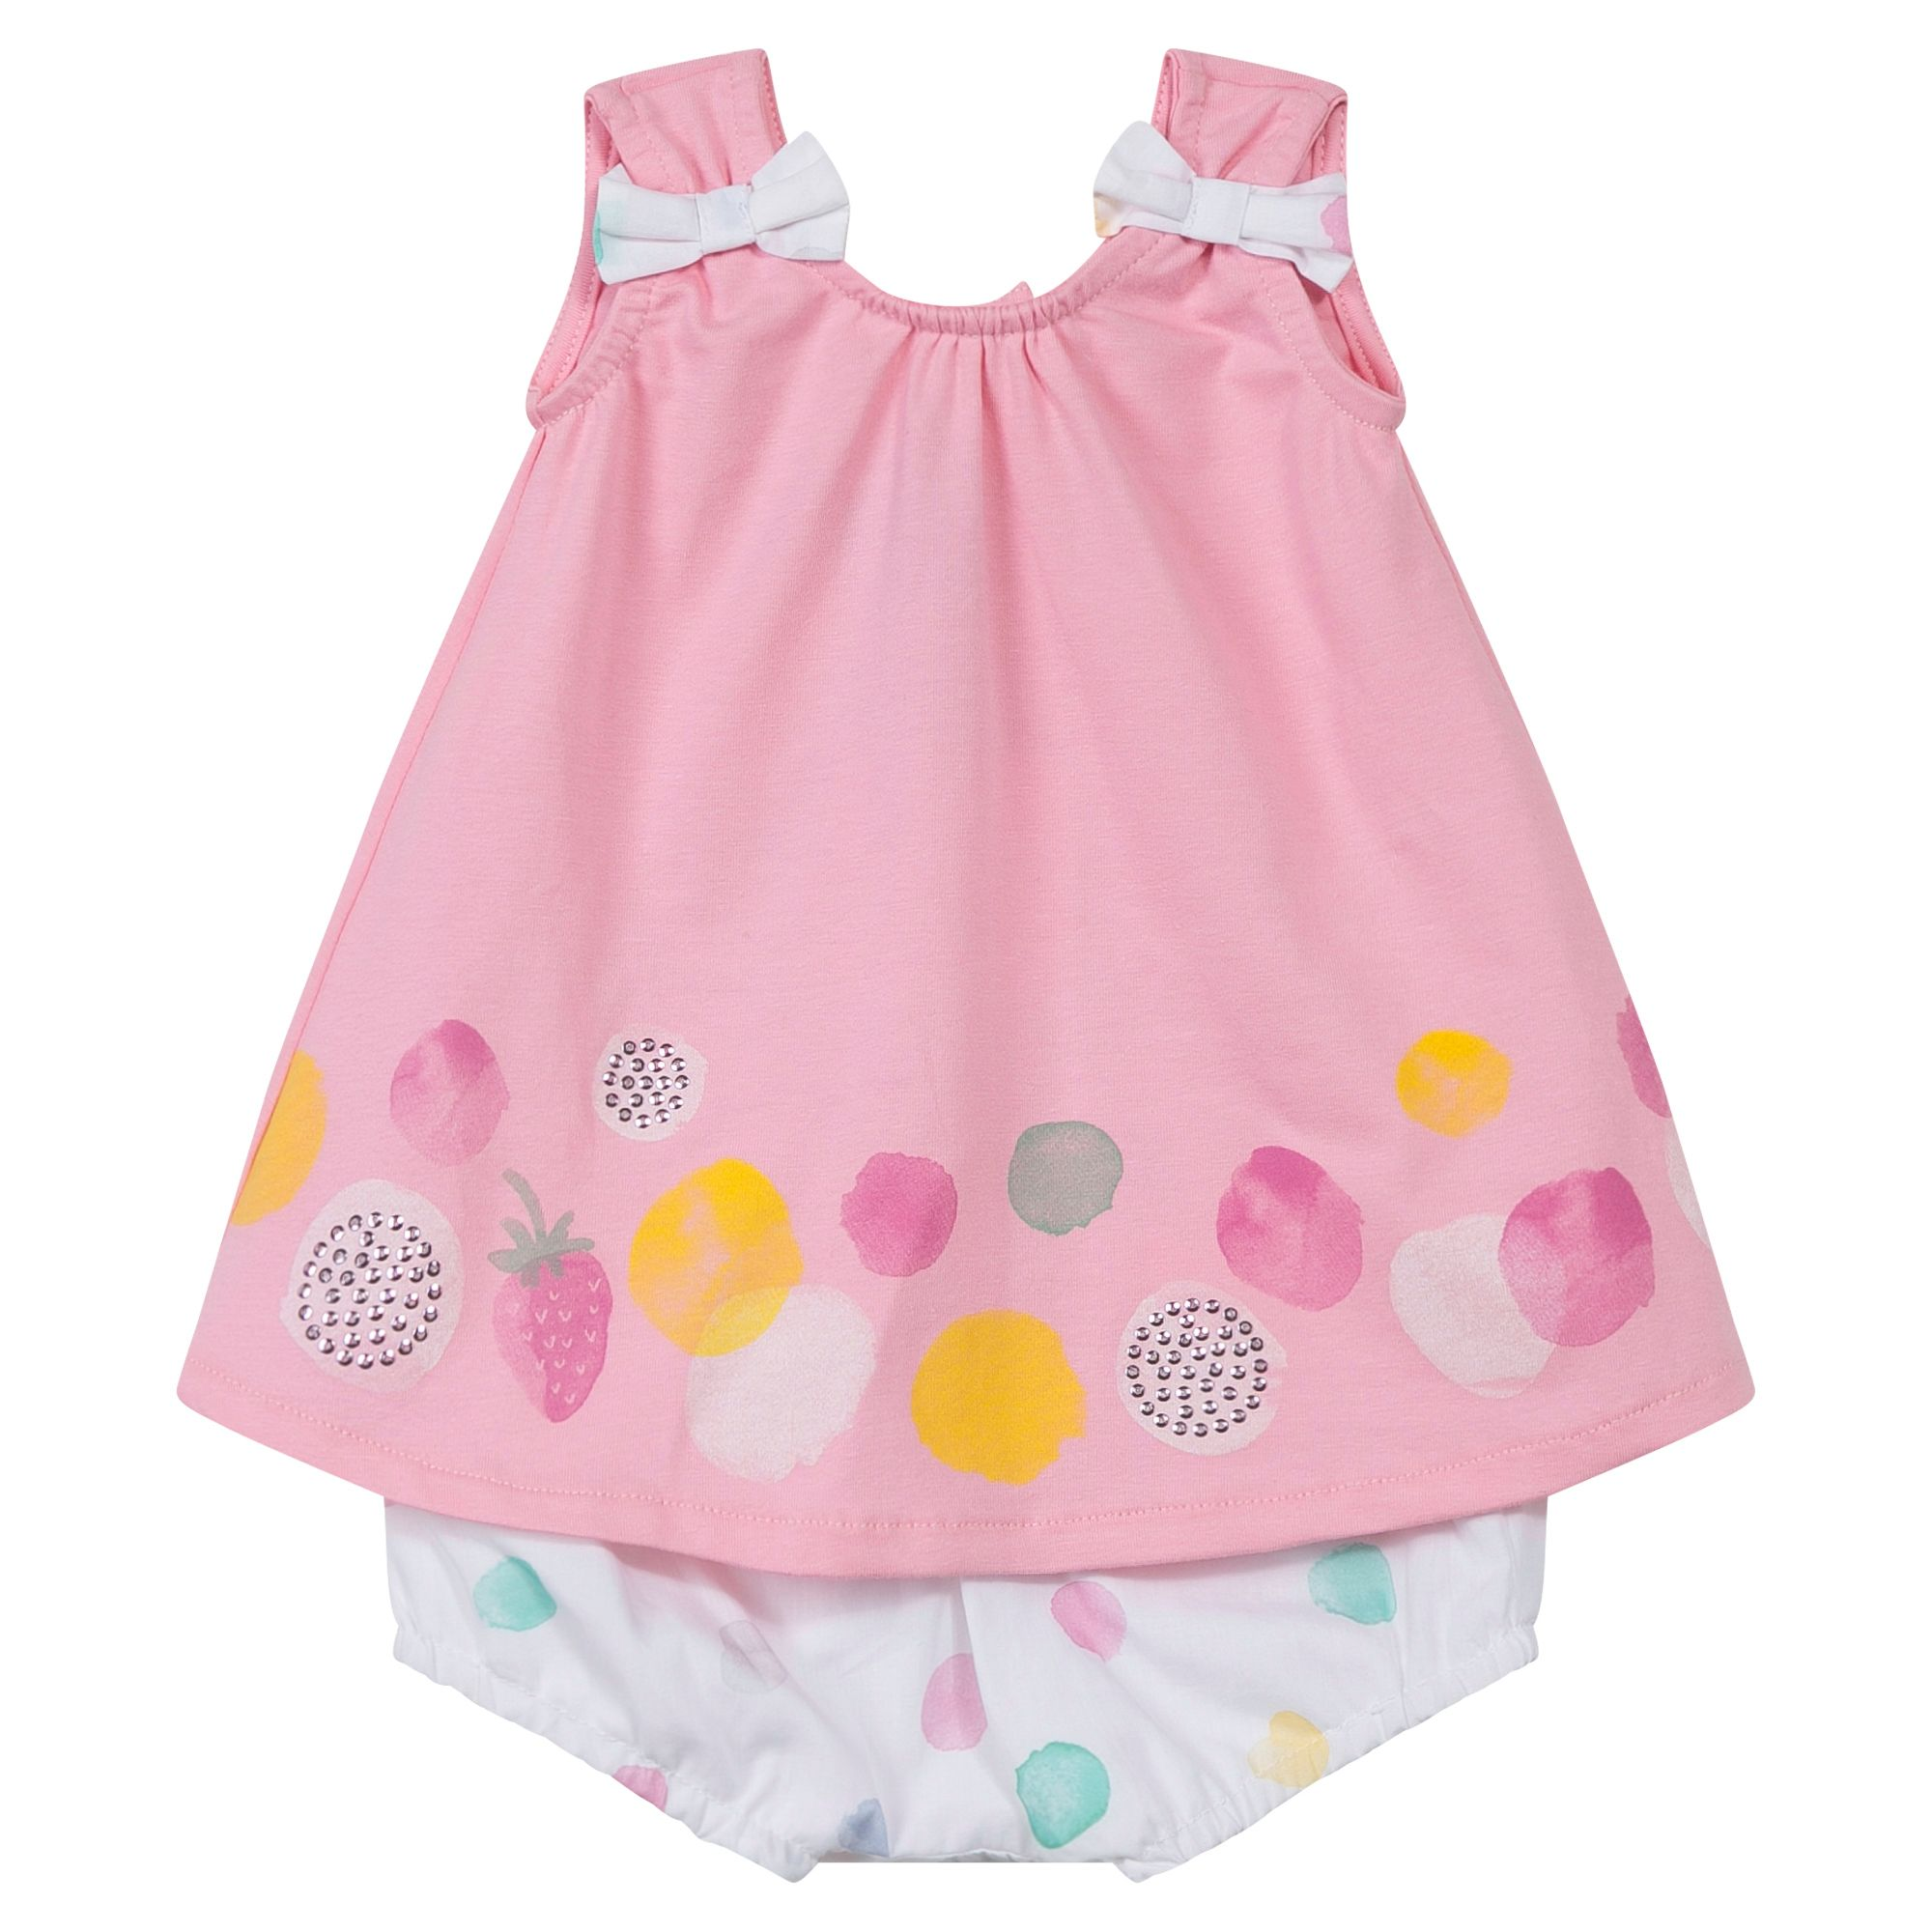 Absorba Absorba Baby Girls Dress with Bloomers, Pink